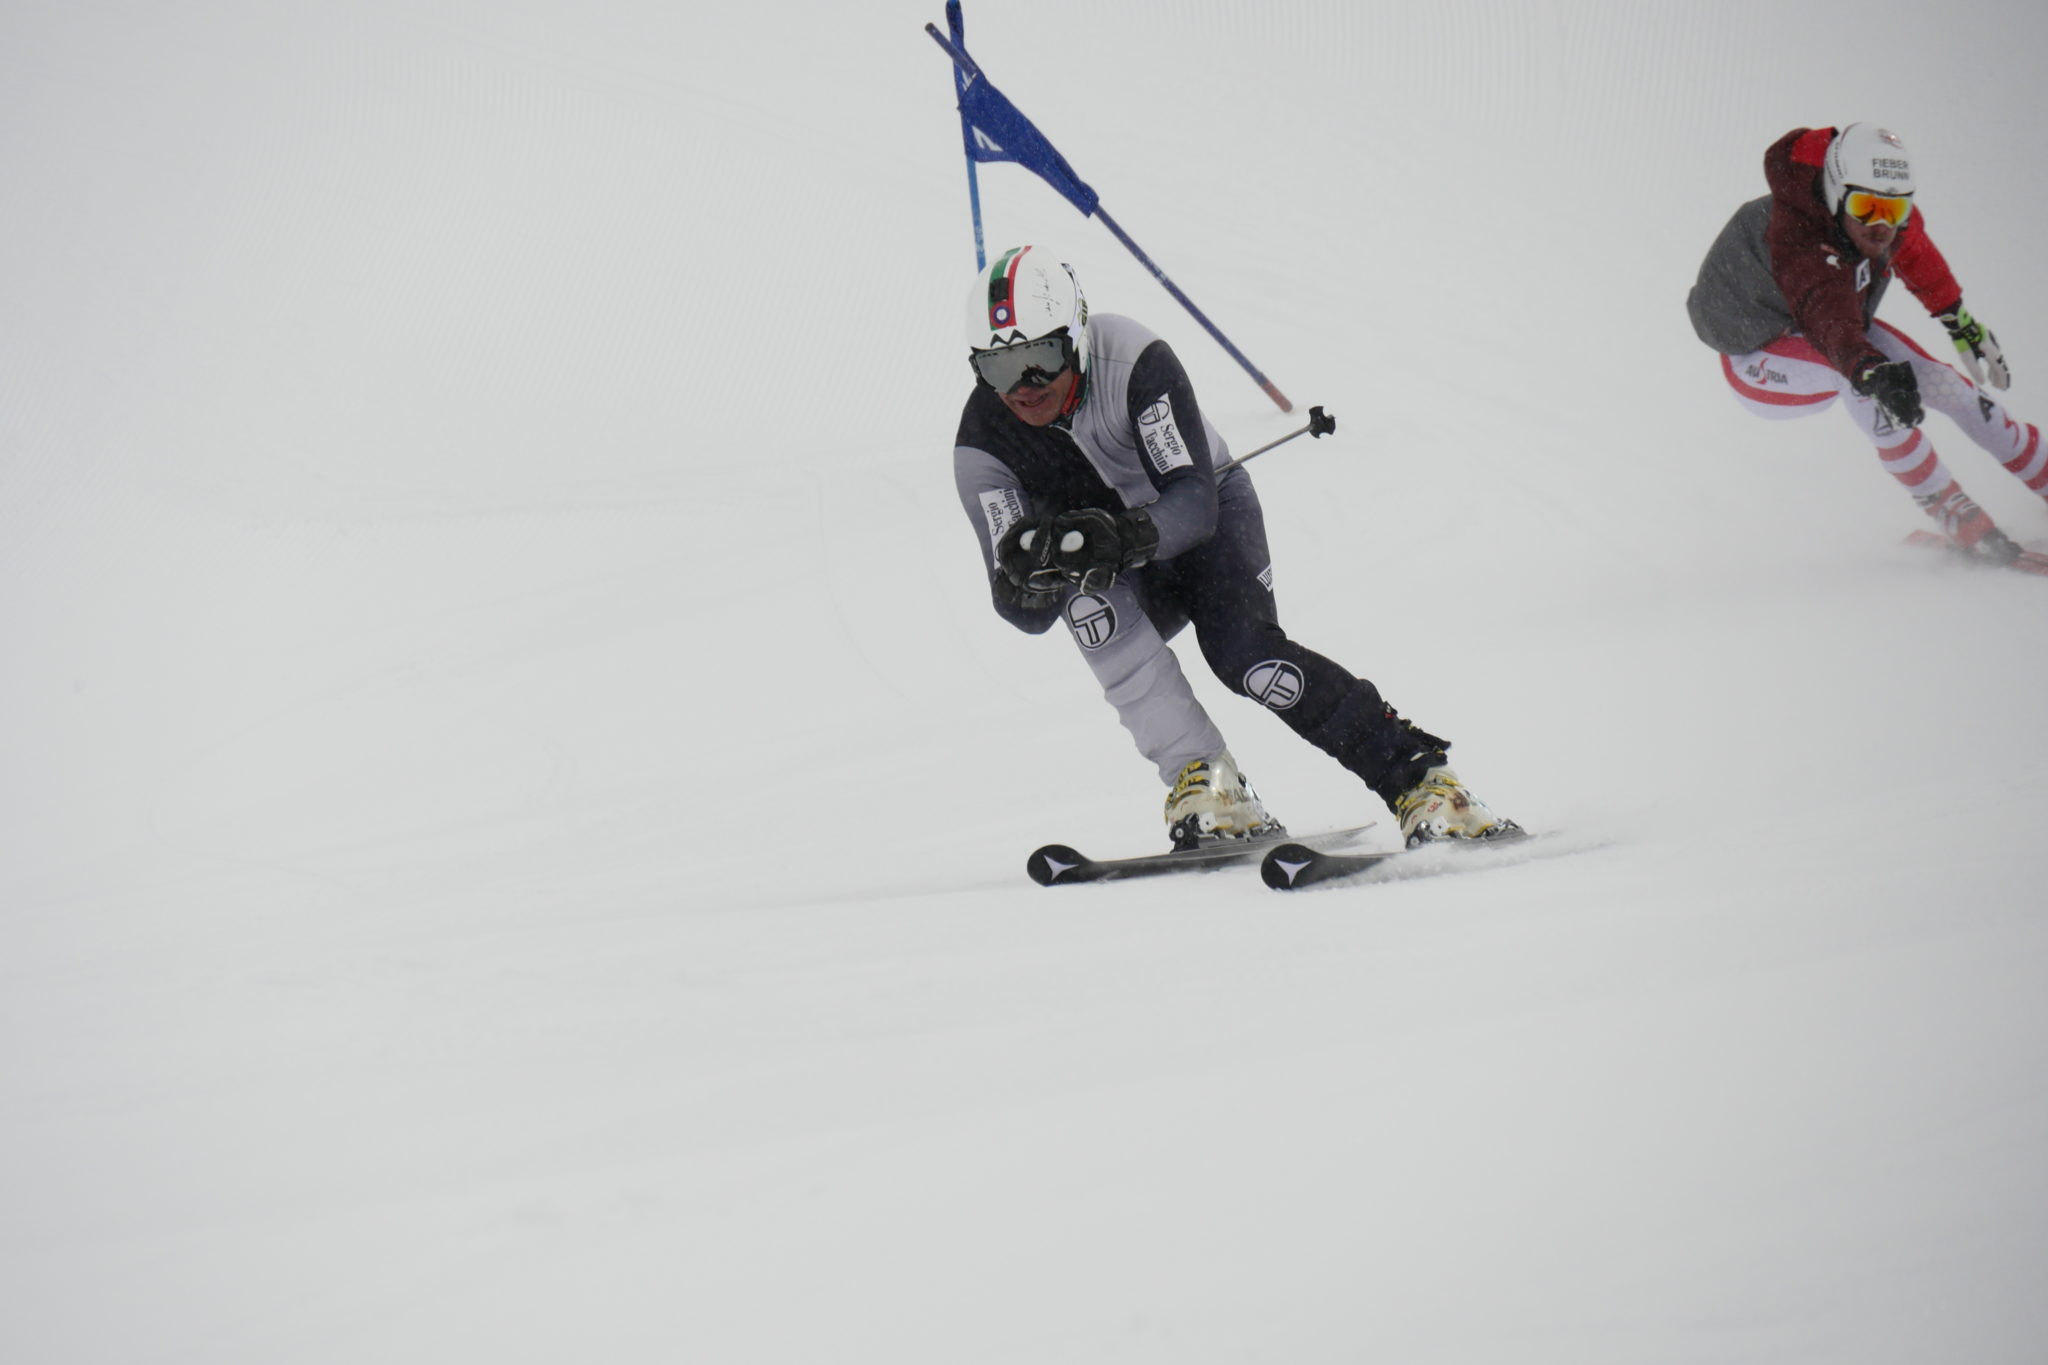 Champions vs. Legends Giant Slalom